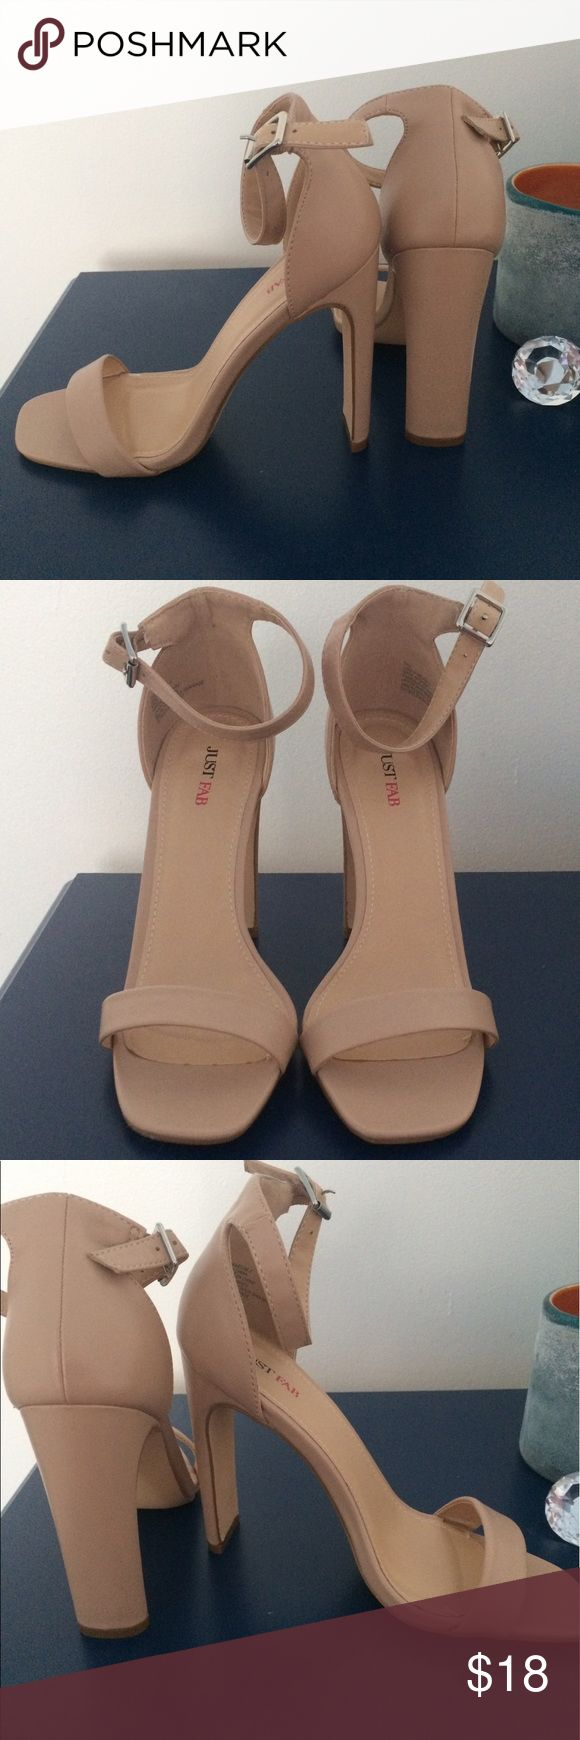 "Beige heel sandals JustFab sky-high beige sandals. Size 6.5. Ankle strap. Approx 4.5"" heel. I love these shoes, but they are too high for me. These shoes have never been worn outside the house. NWOT. JustFab Shoes Heels"